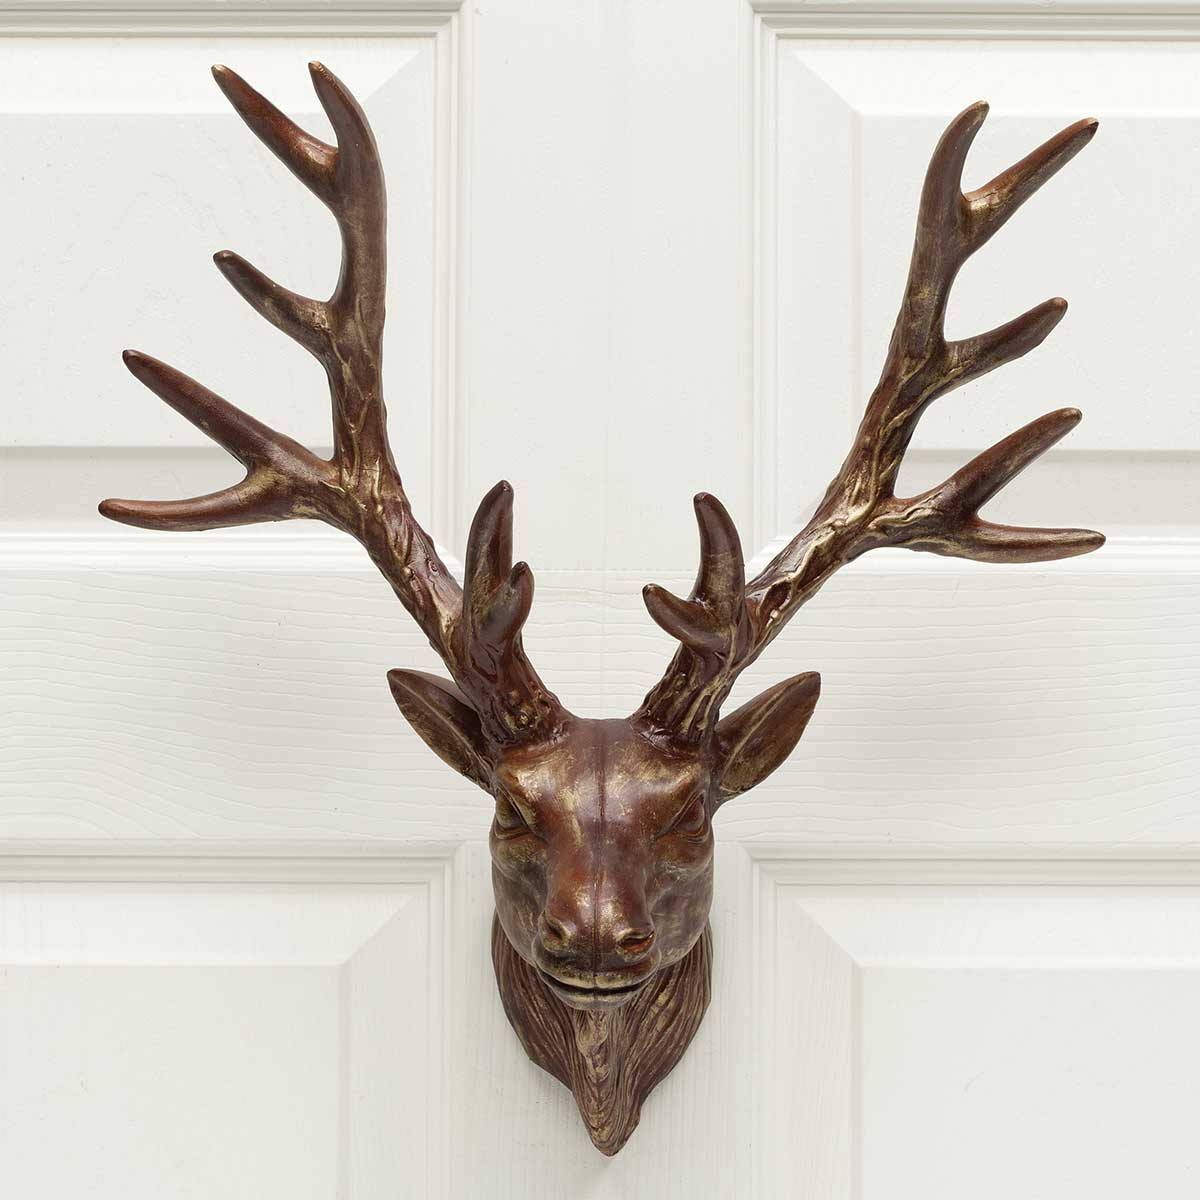 walls hanging and kalalou the wooden catching deer wall recycled eye hangingwill decor an give look pin head stag